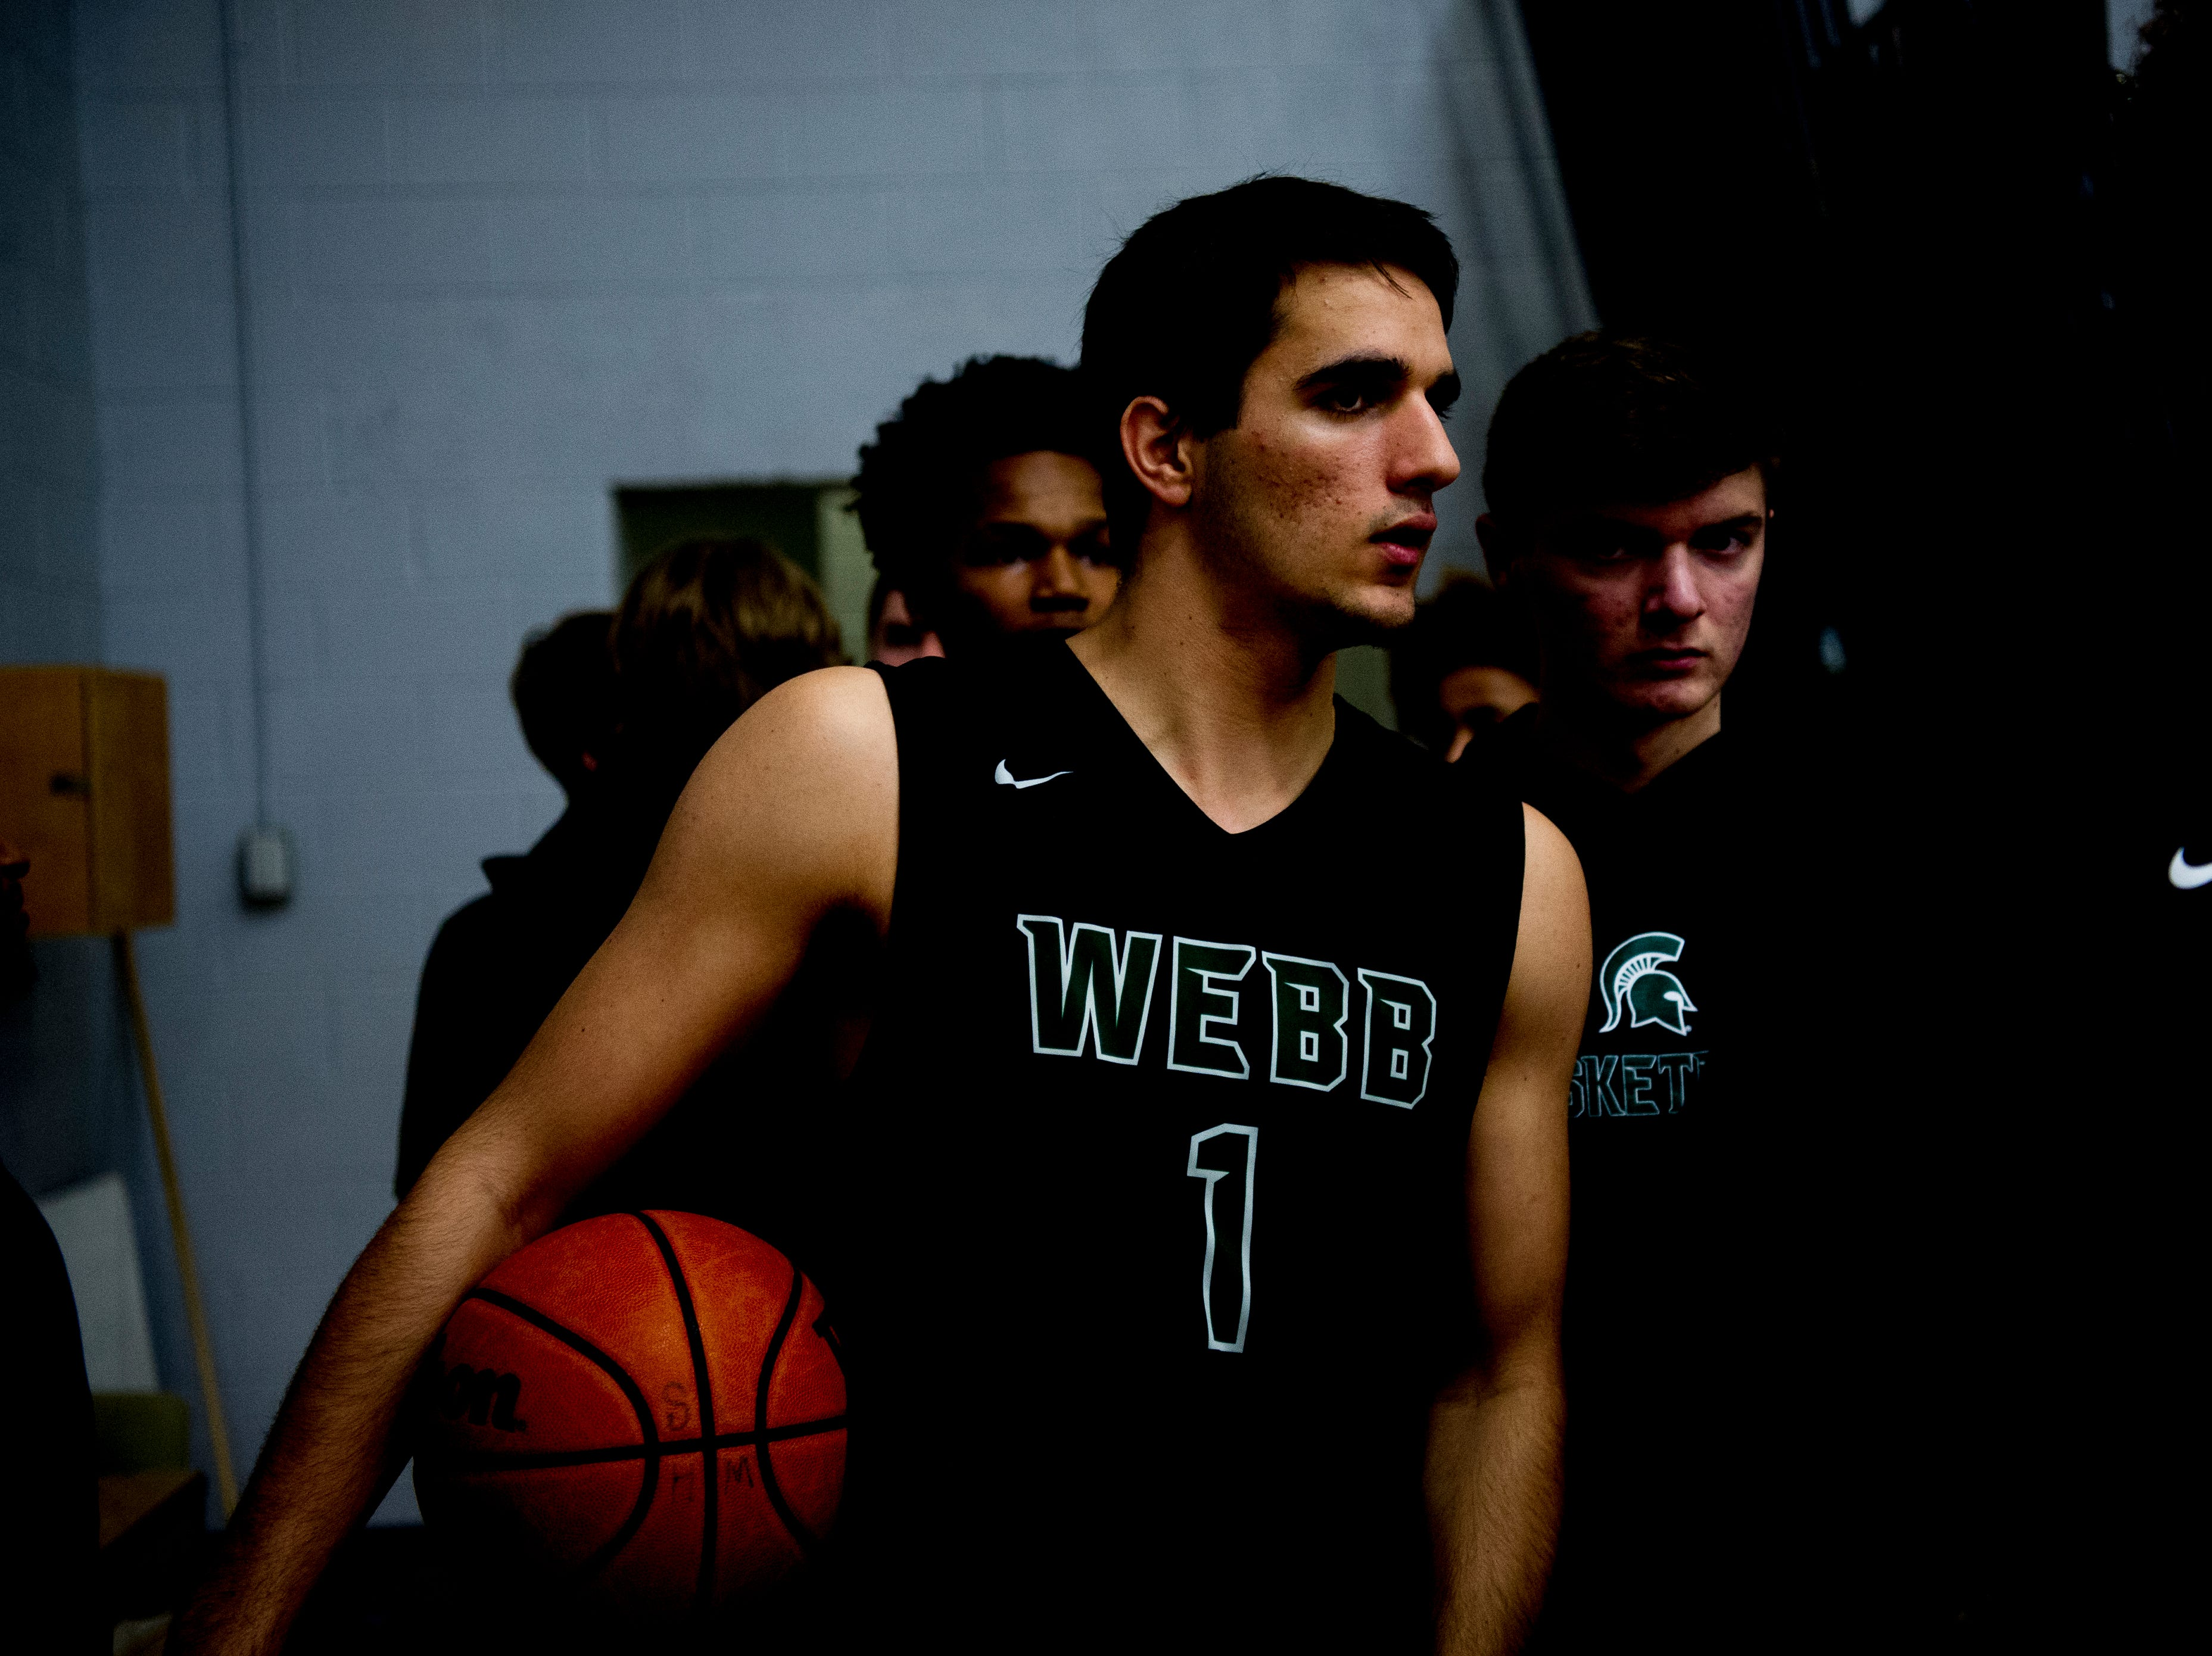 Webb's Uriah Powers (1) takes the court from the locker room during a game between West and Webb at West High School in Knoxville, Tennessee on Friday, January 4, 2019.